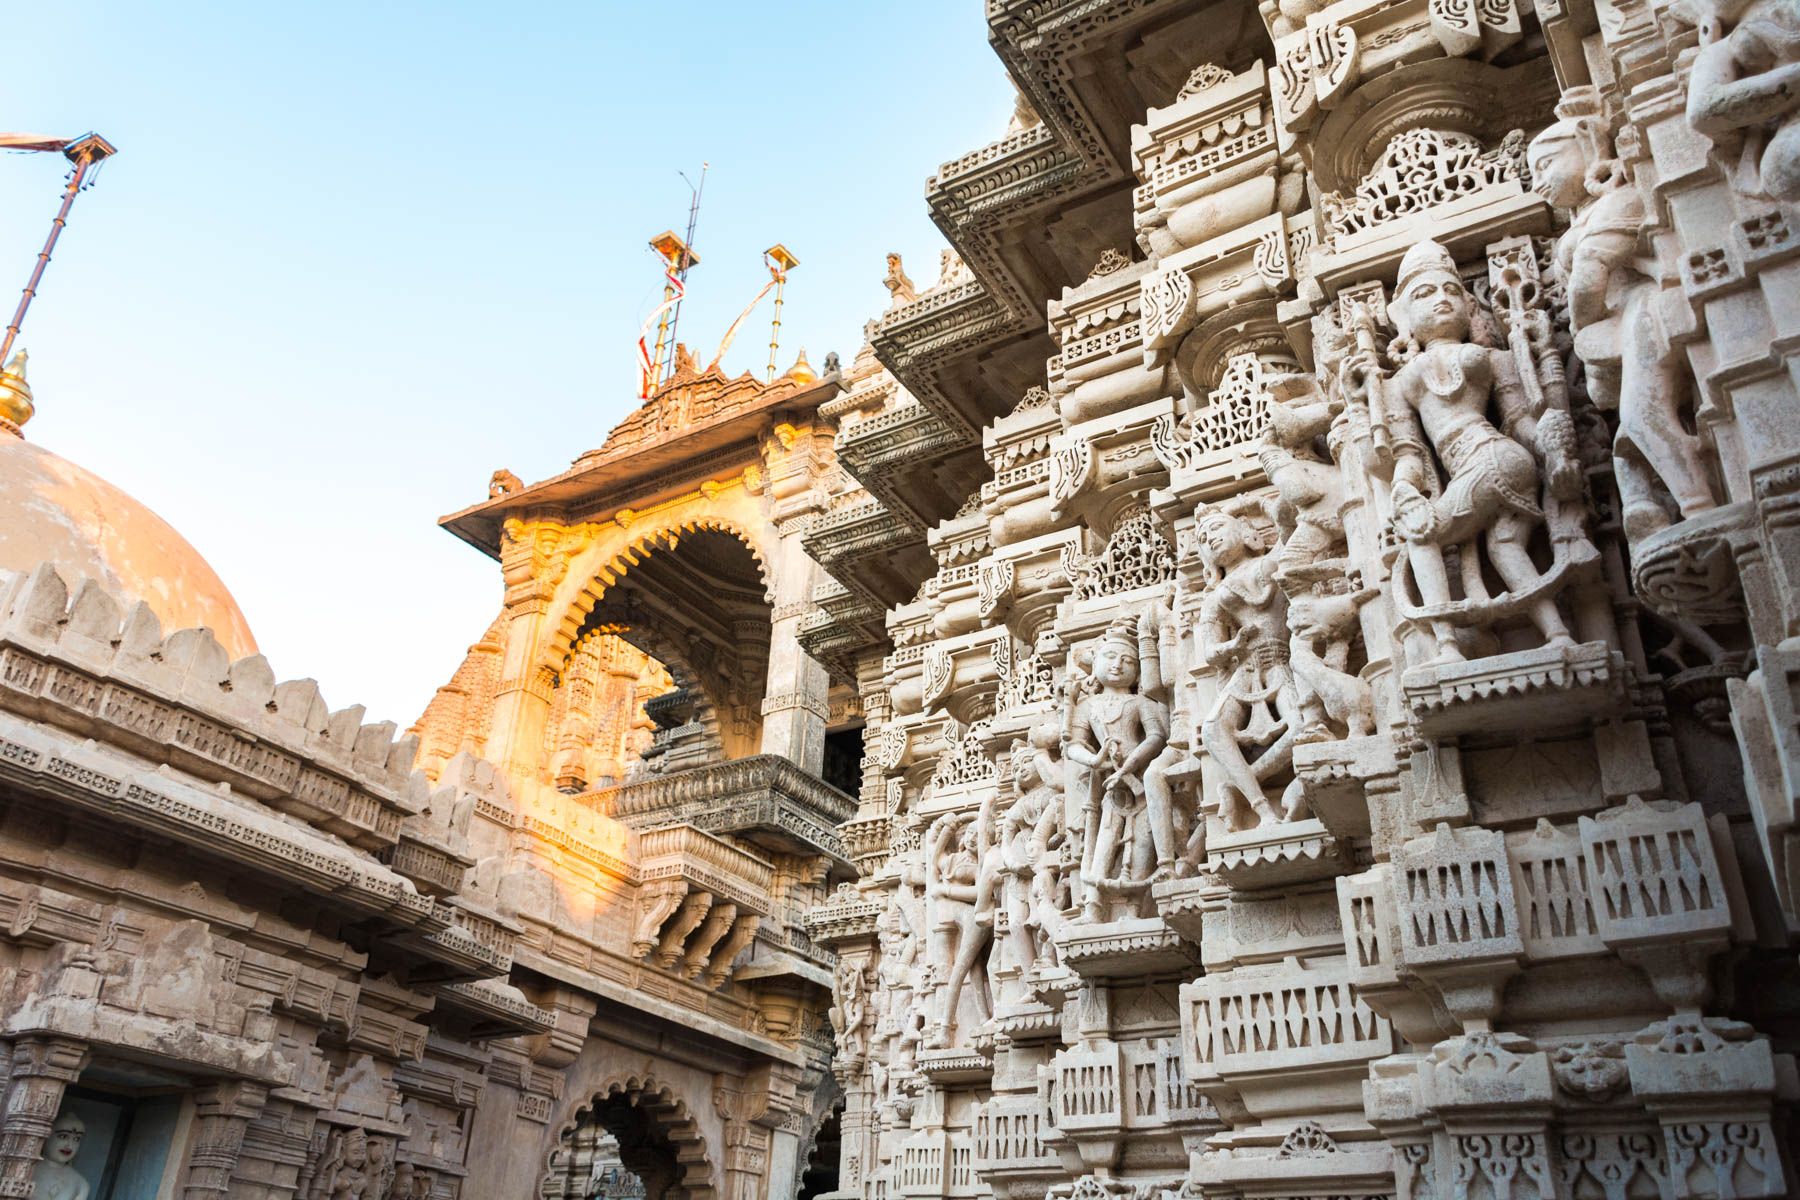 Jain pilgrimage in Palitana, Gujarat, India - Sunrise on temple details - Lost With Purpose